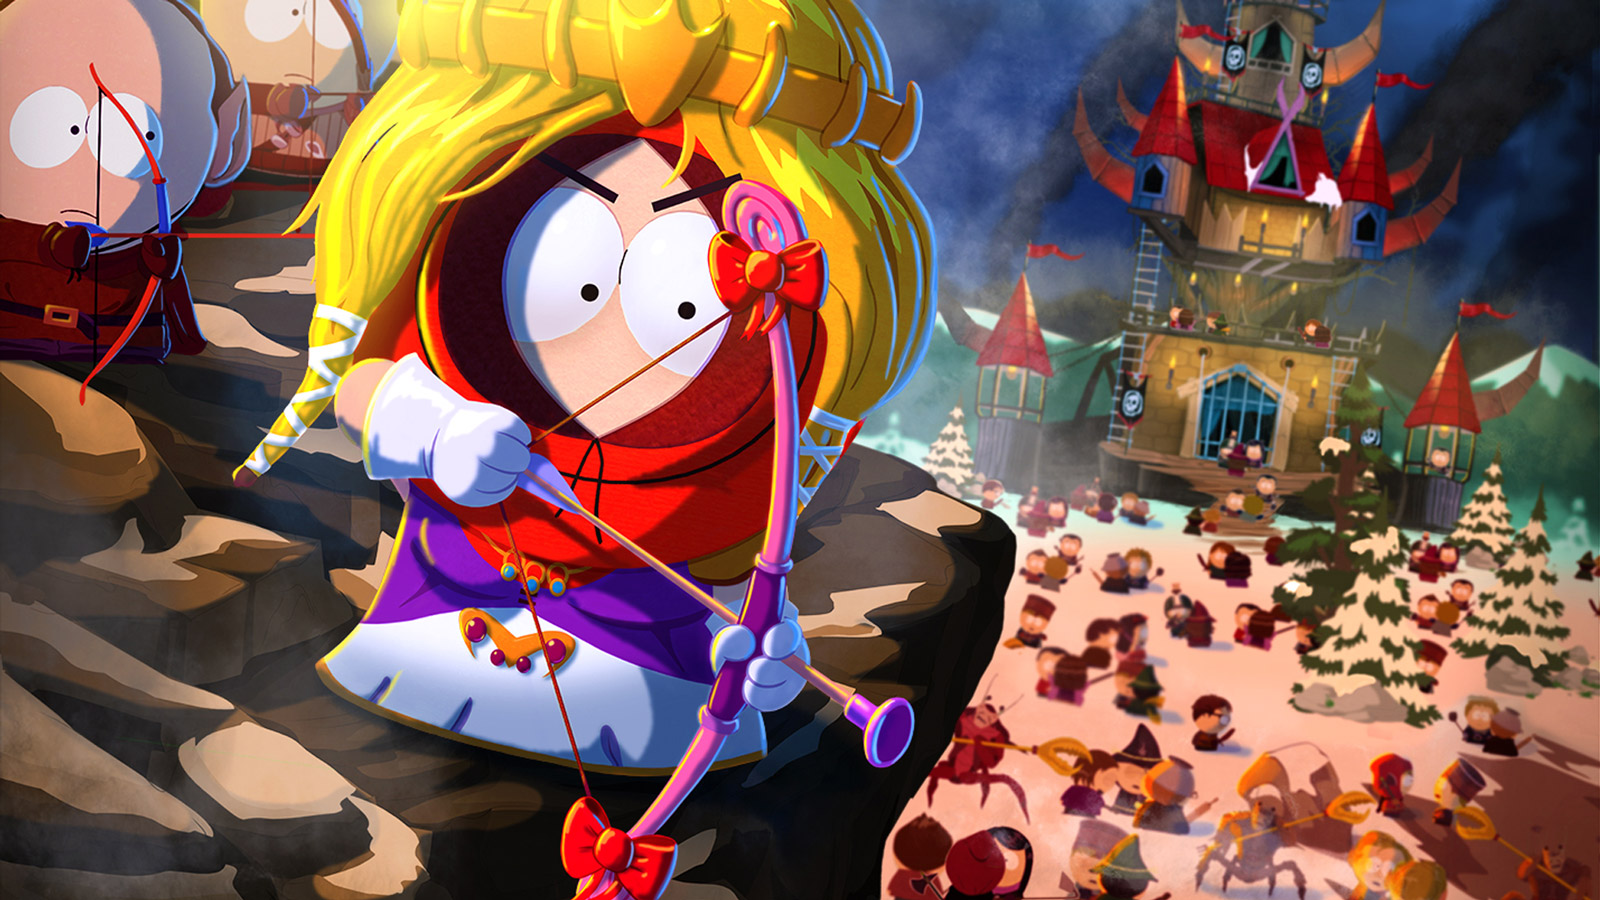 Free South Park: The Stick of Truth Wallpaper in 1600x900